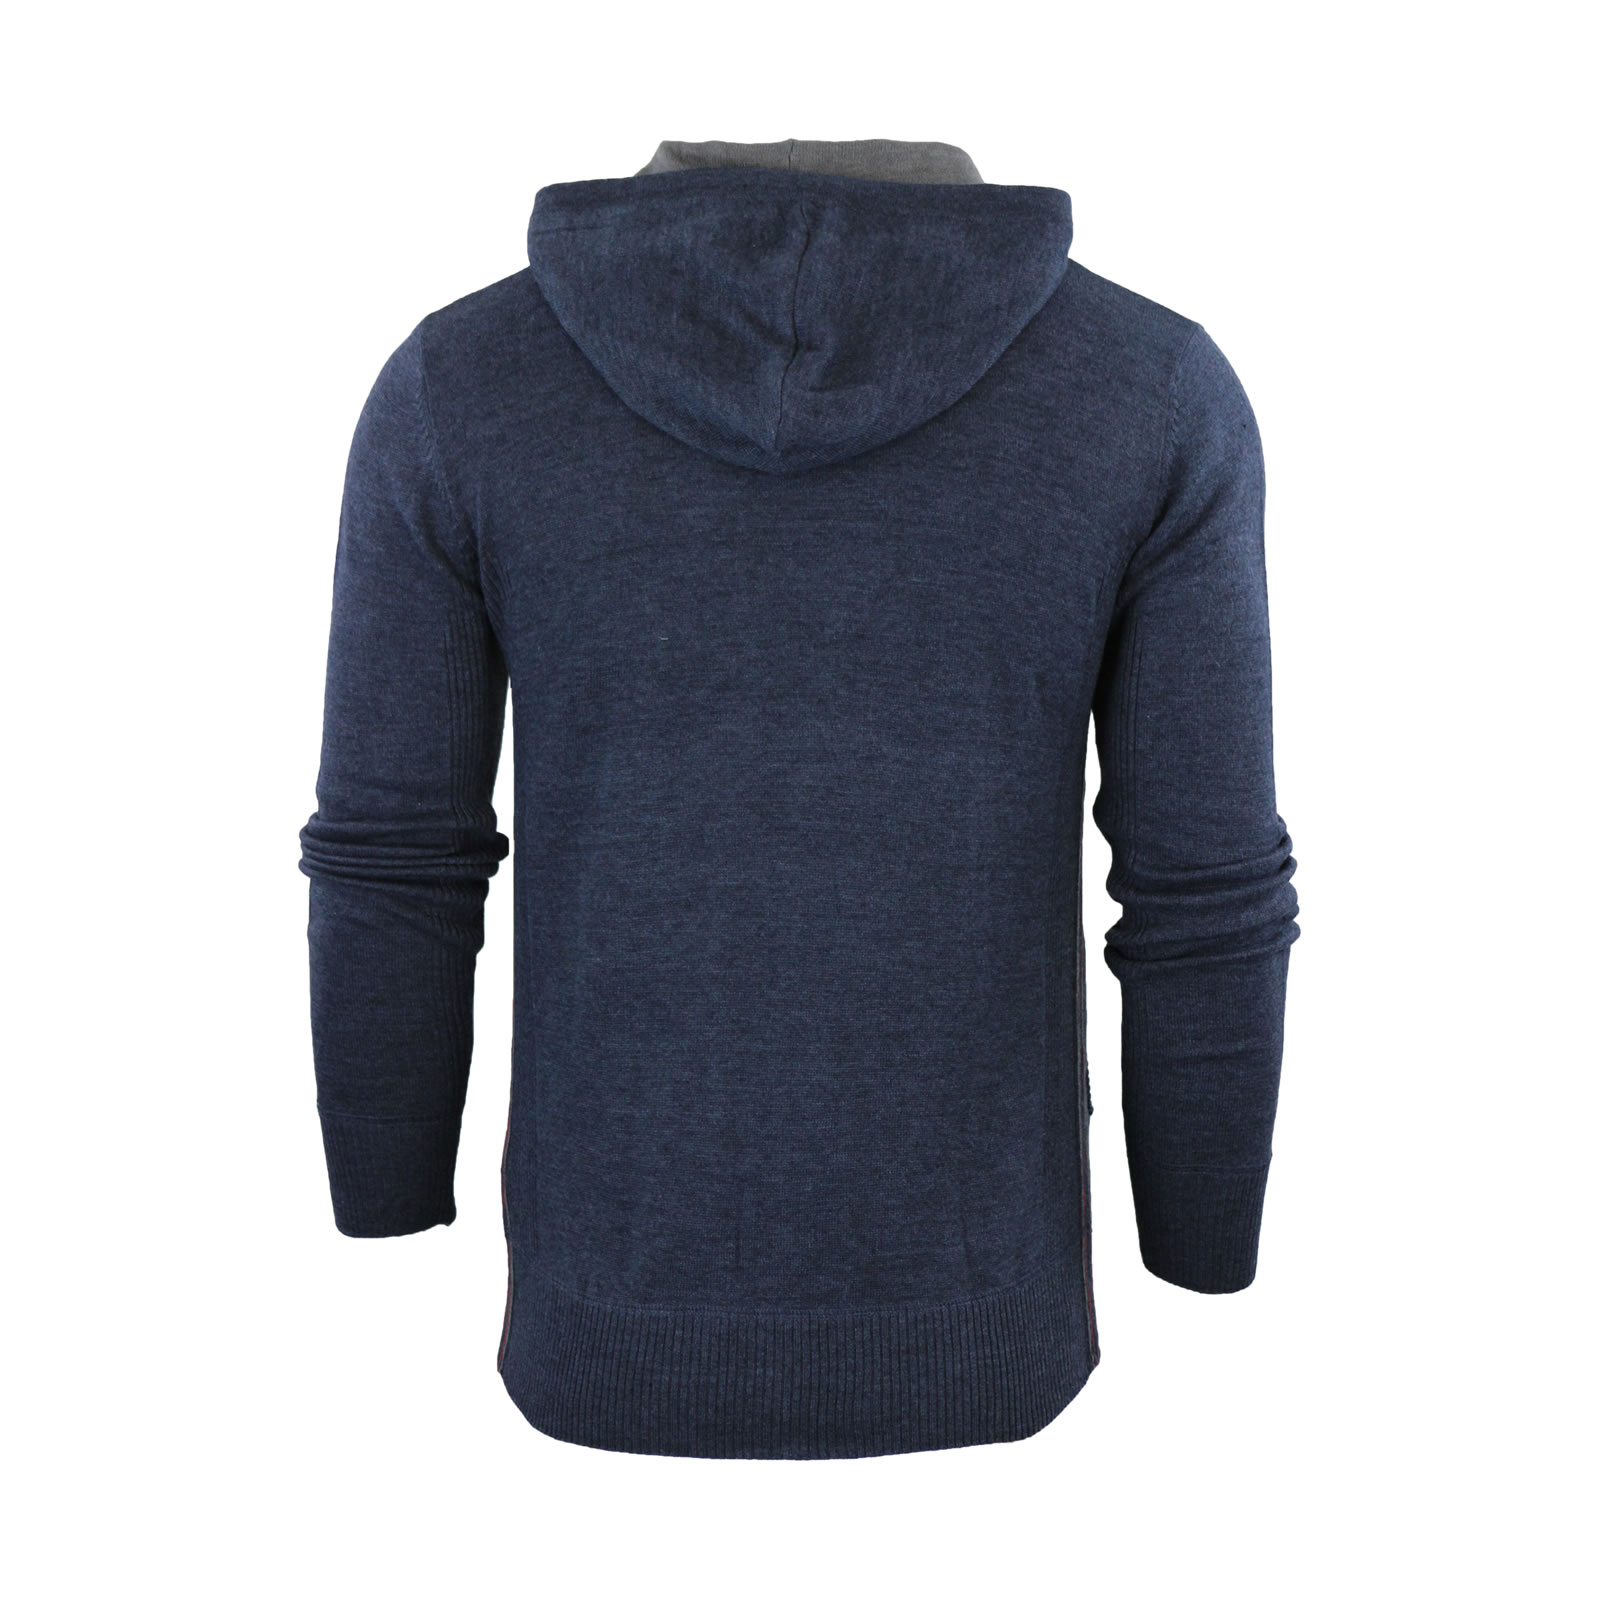 Mens Hoodie Jumper Ringspun Junip Hooded Knitted Sweater ...